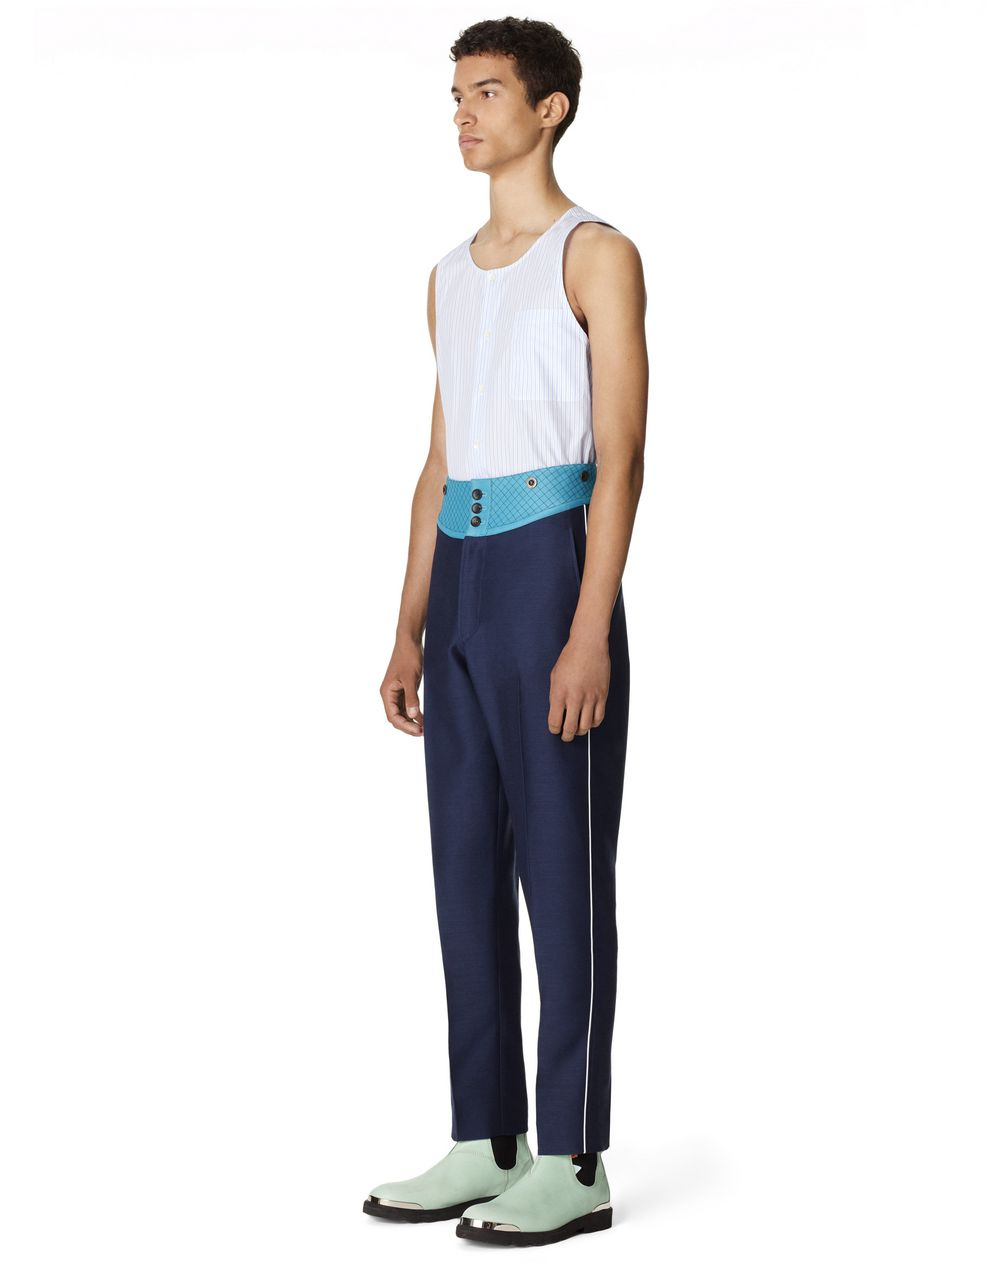 PANTS WITH QUILTED BELT - Lanvin